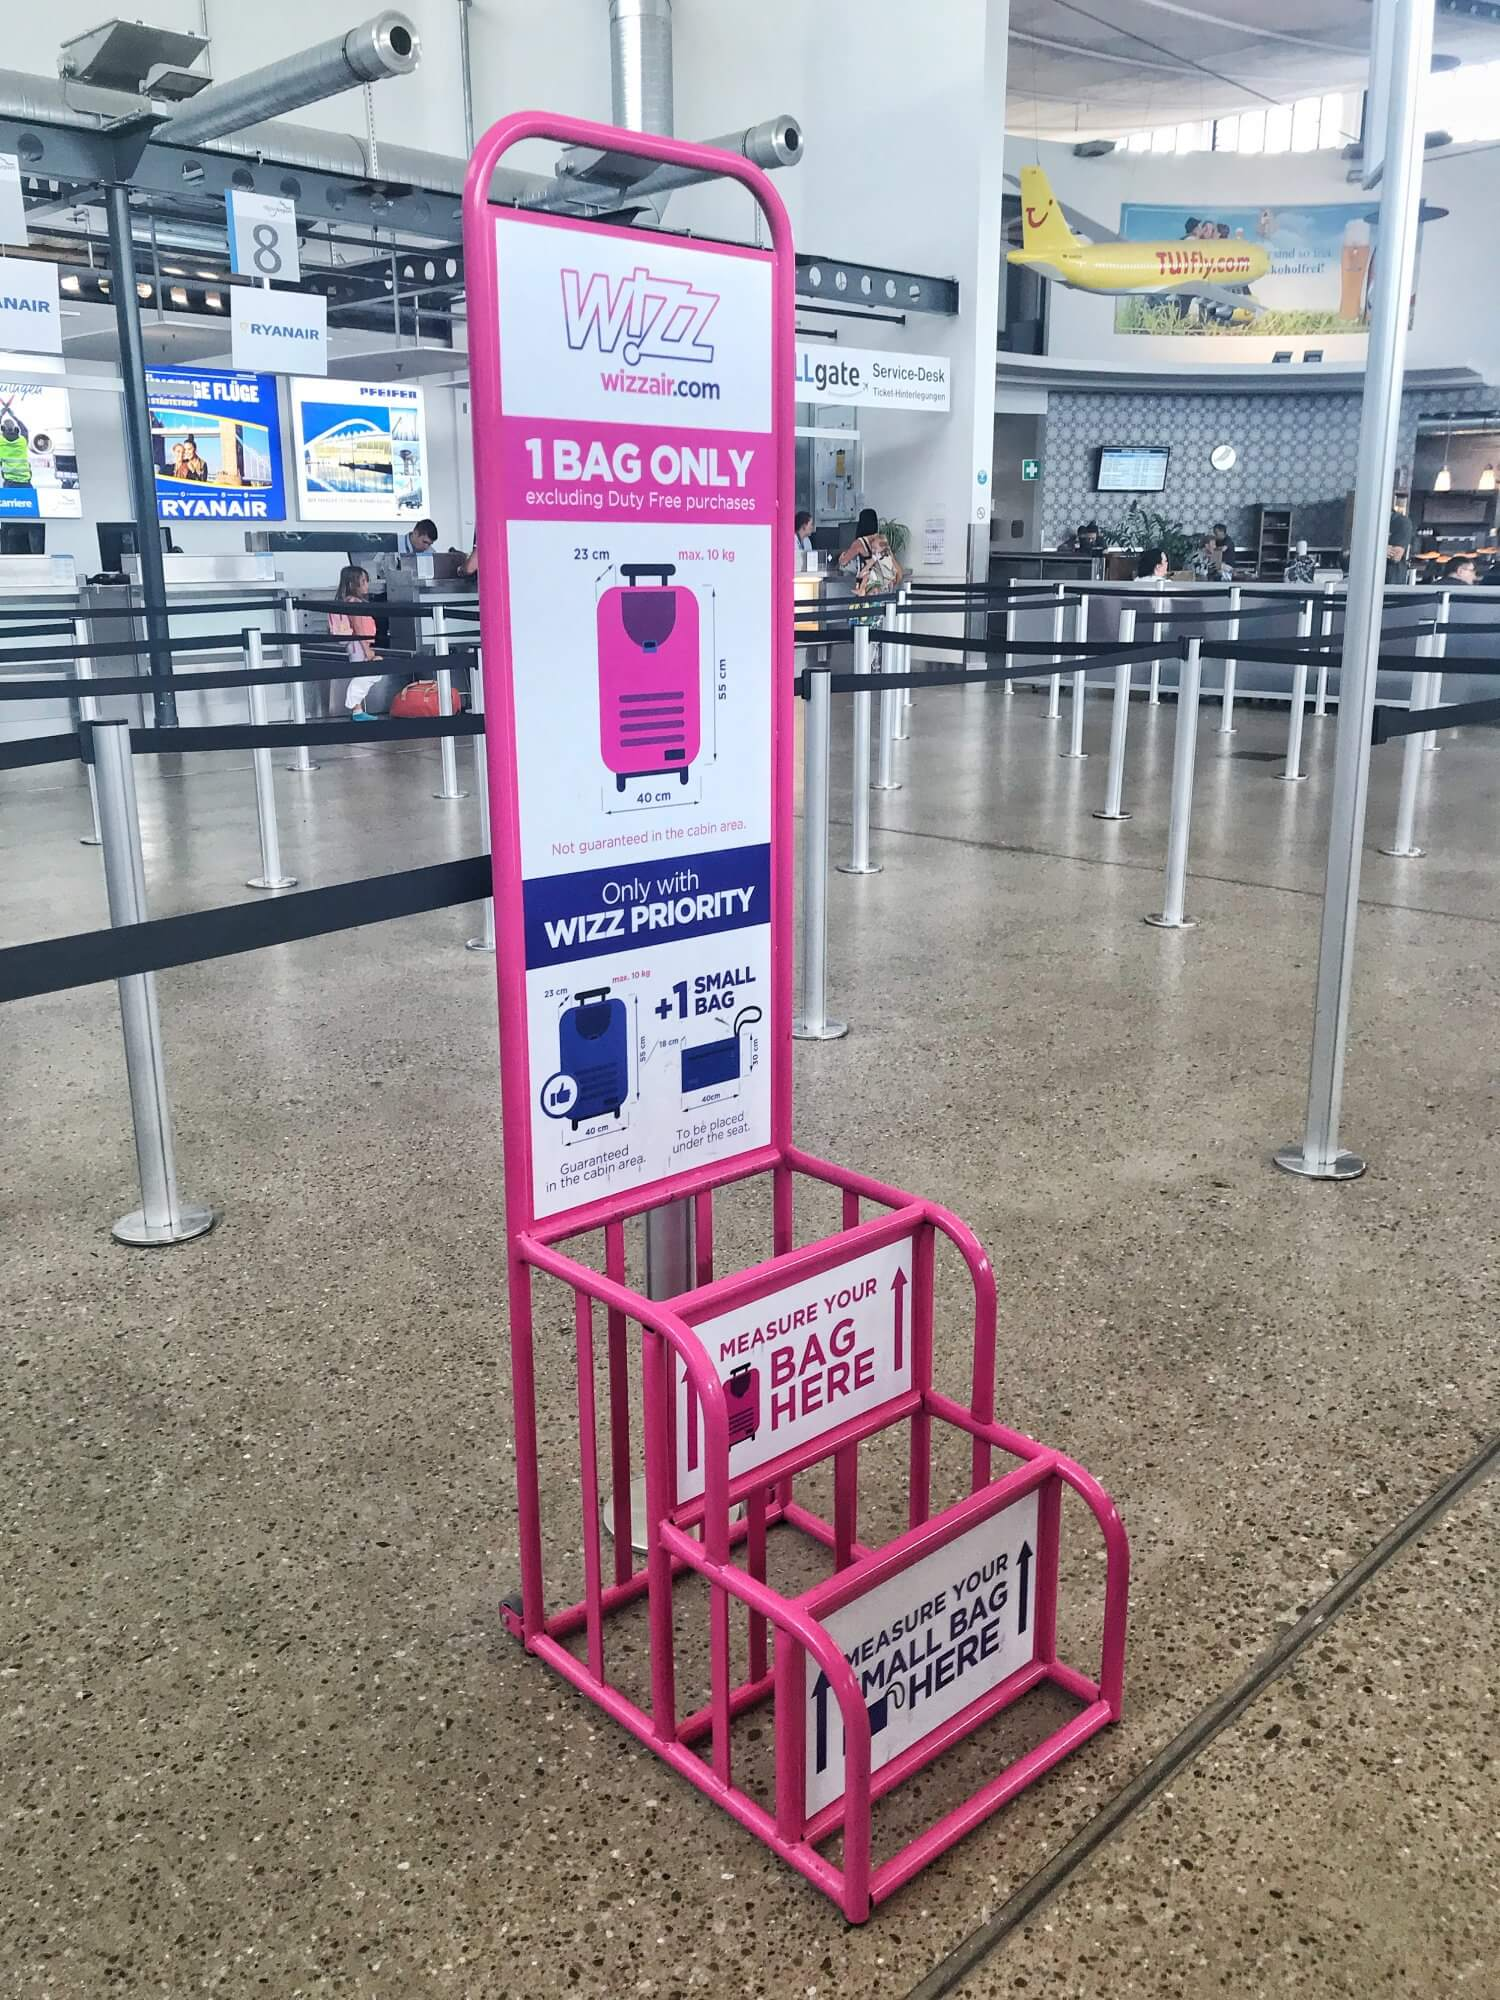 Wizz Air review photo of the hand luggage size restrictions with Wizz Air